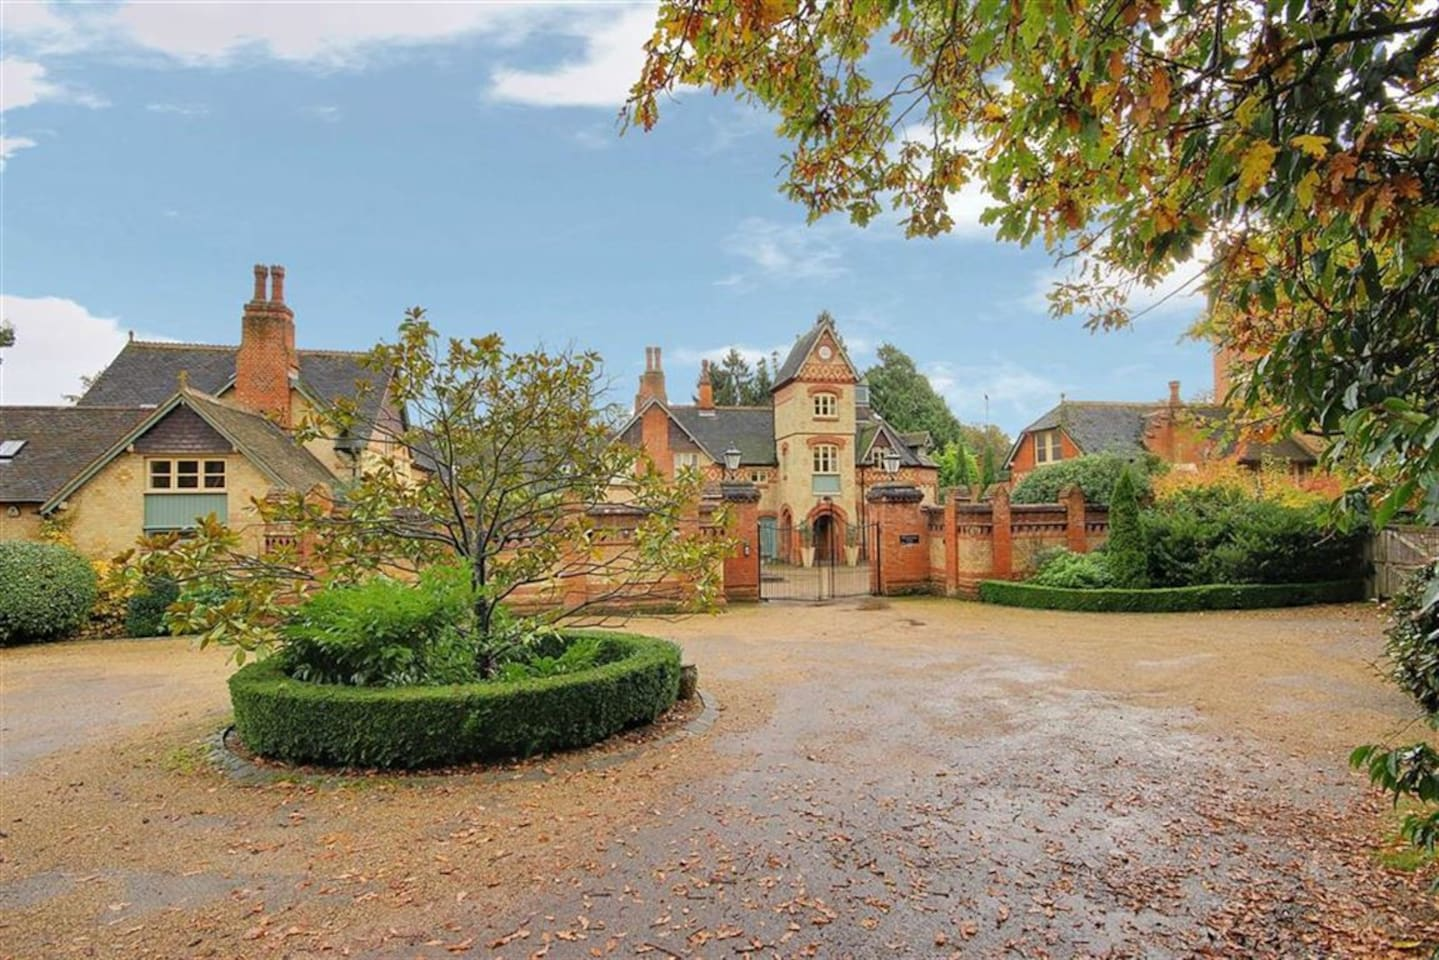 6 bed Tower -N london/Herts border